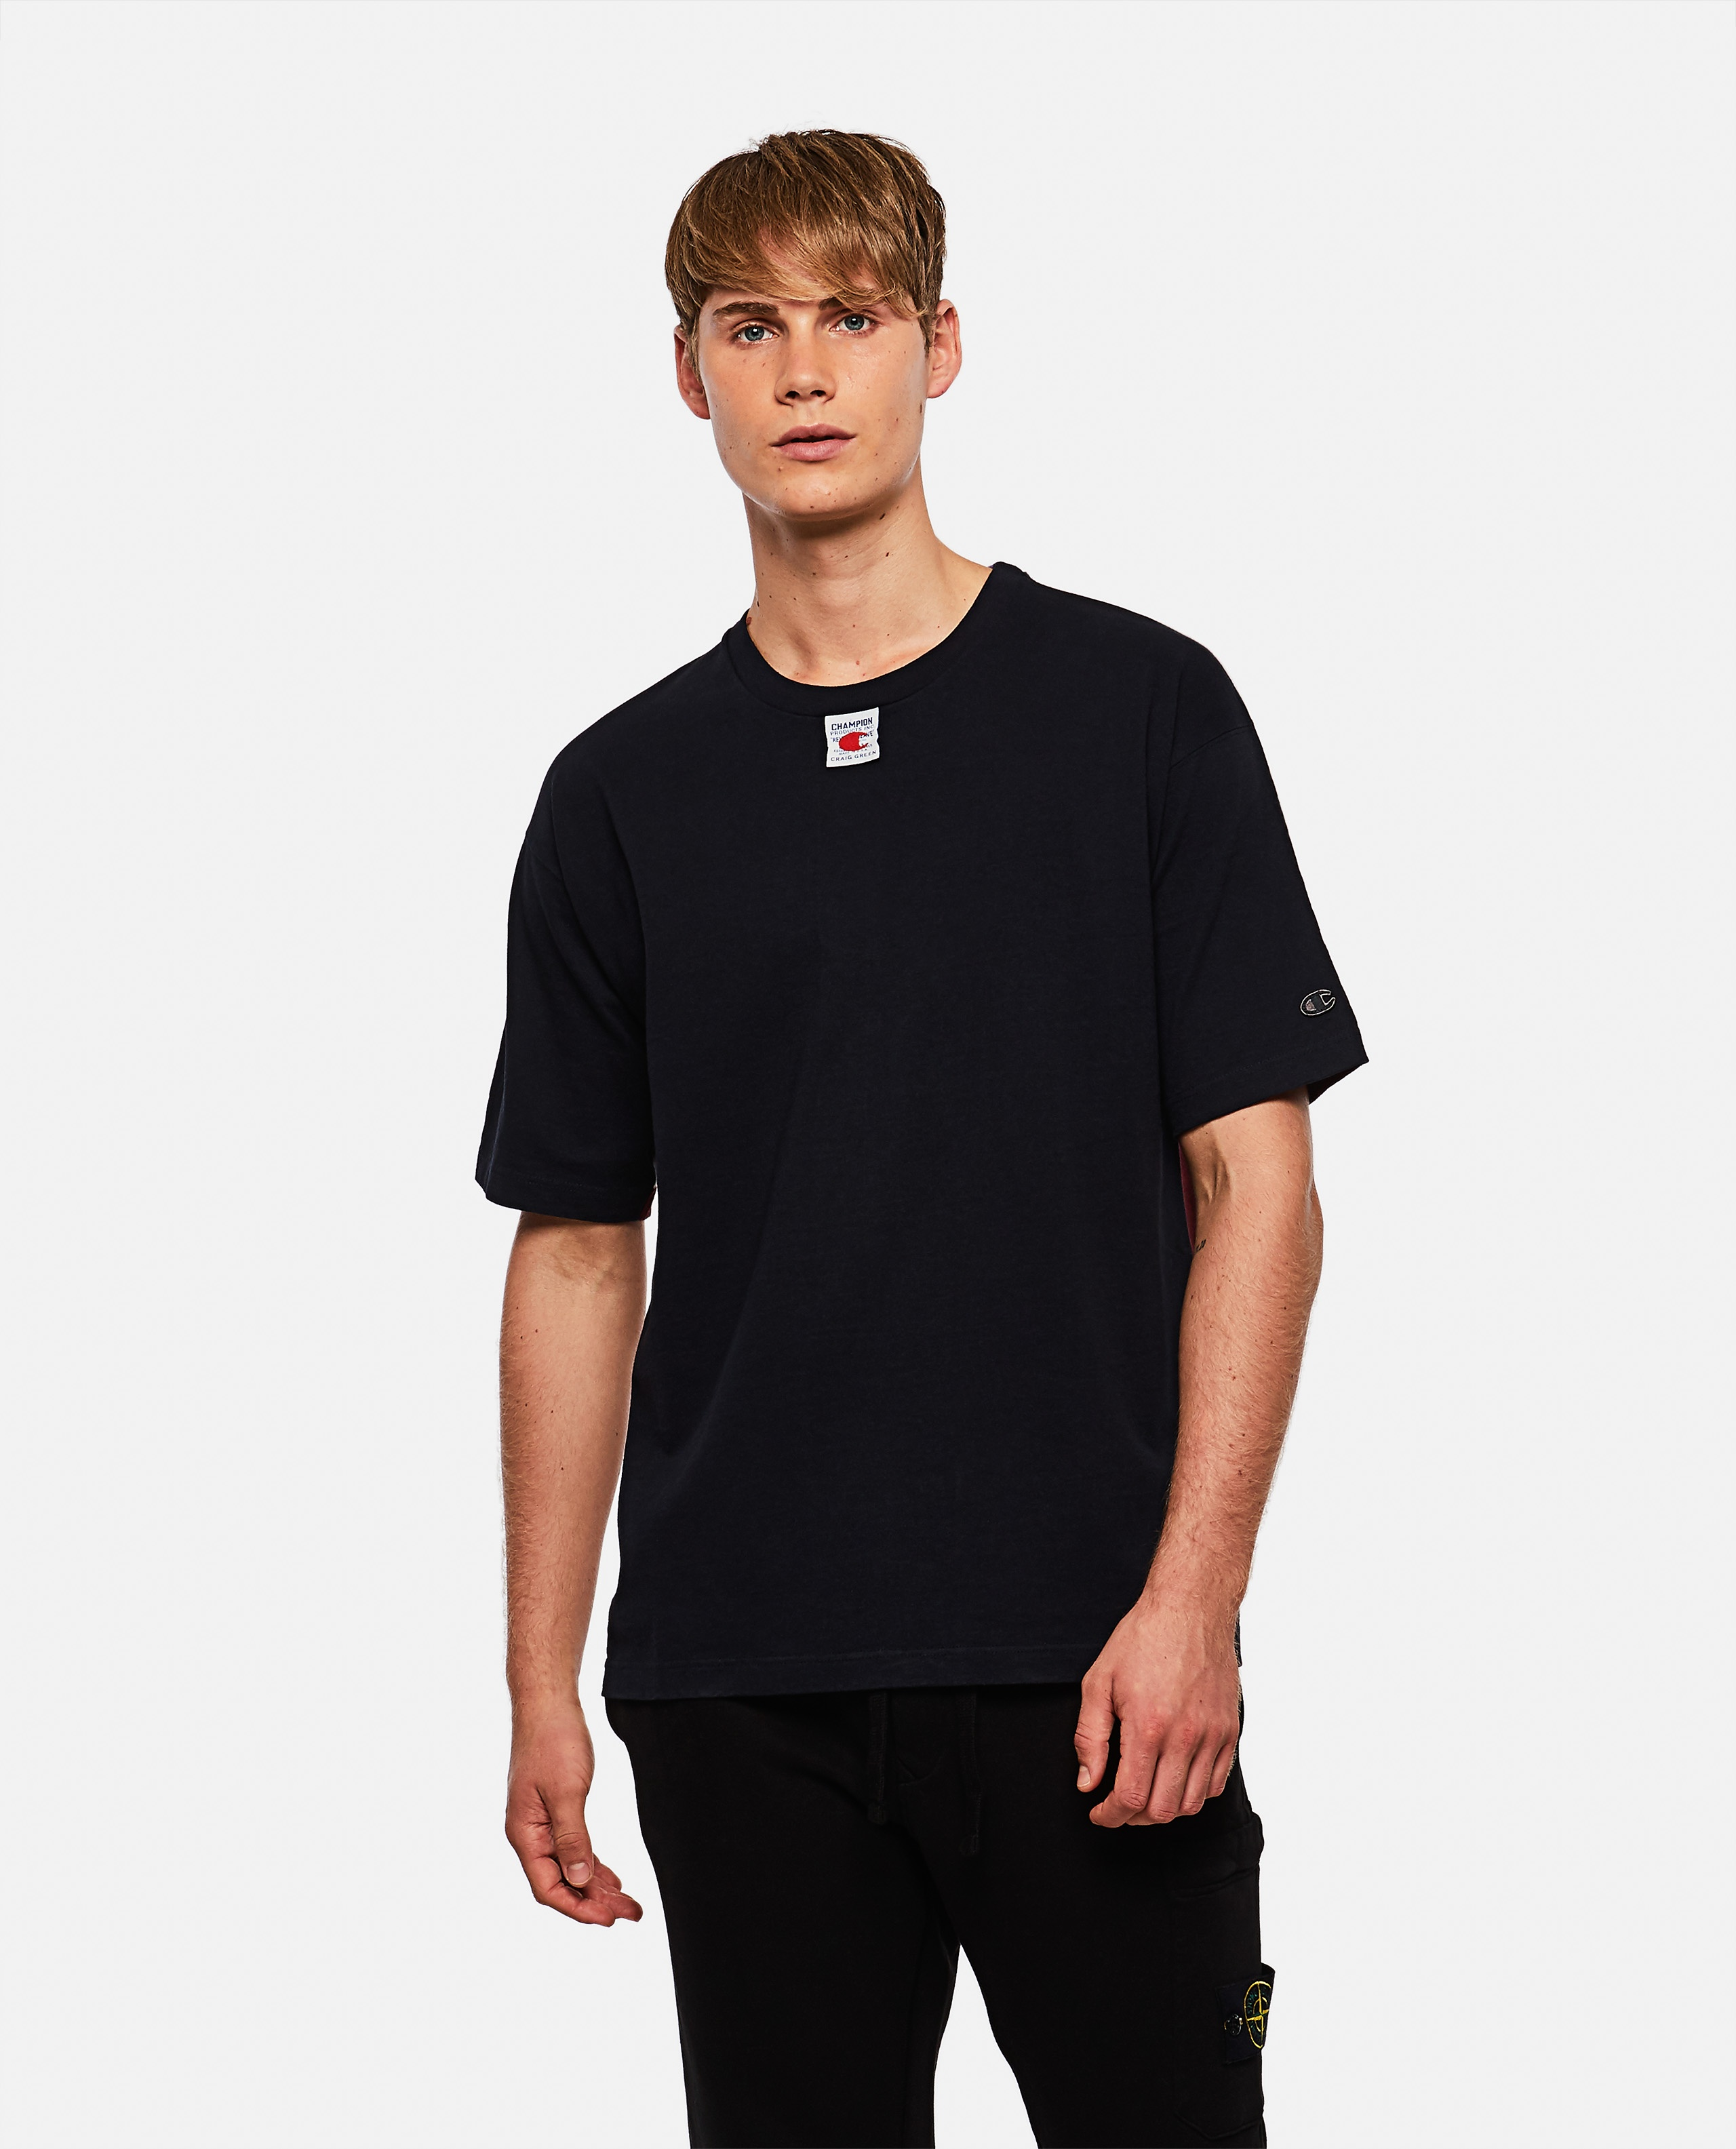 Champion x Craig Green 70s vintage t-shirt Men Champion x Craig Green 000278240041012 1